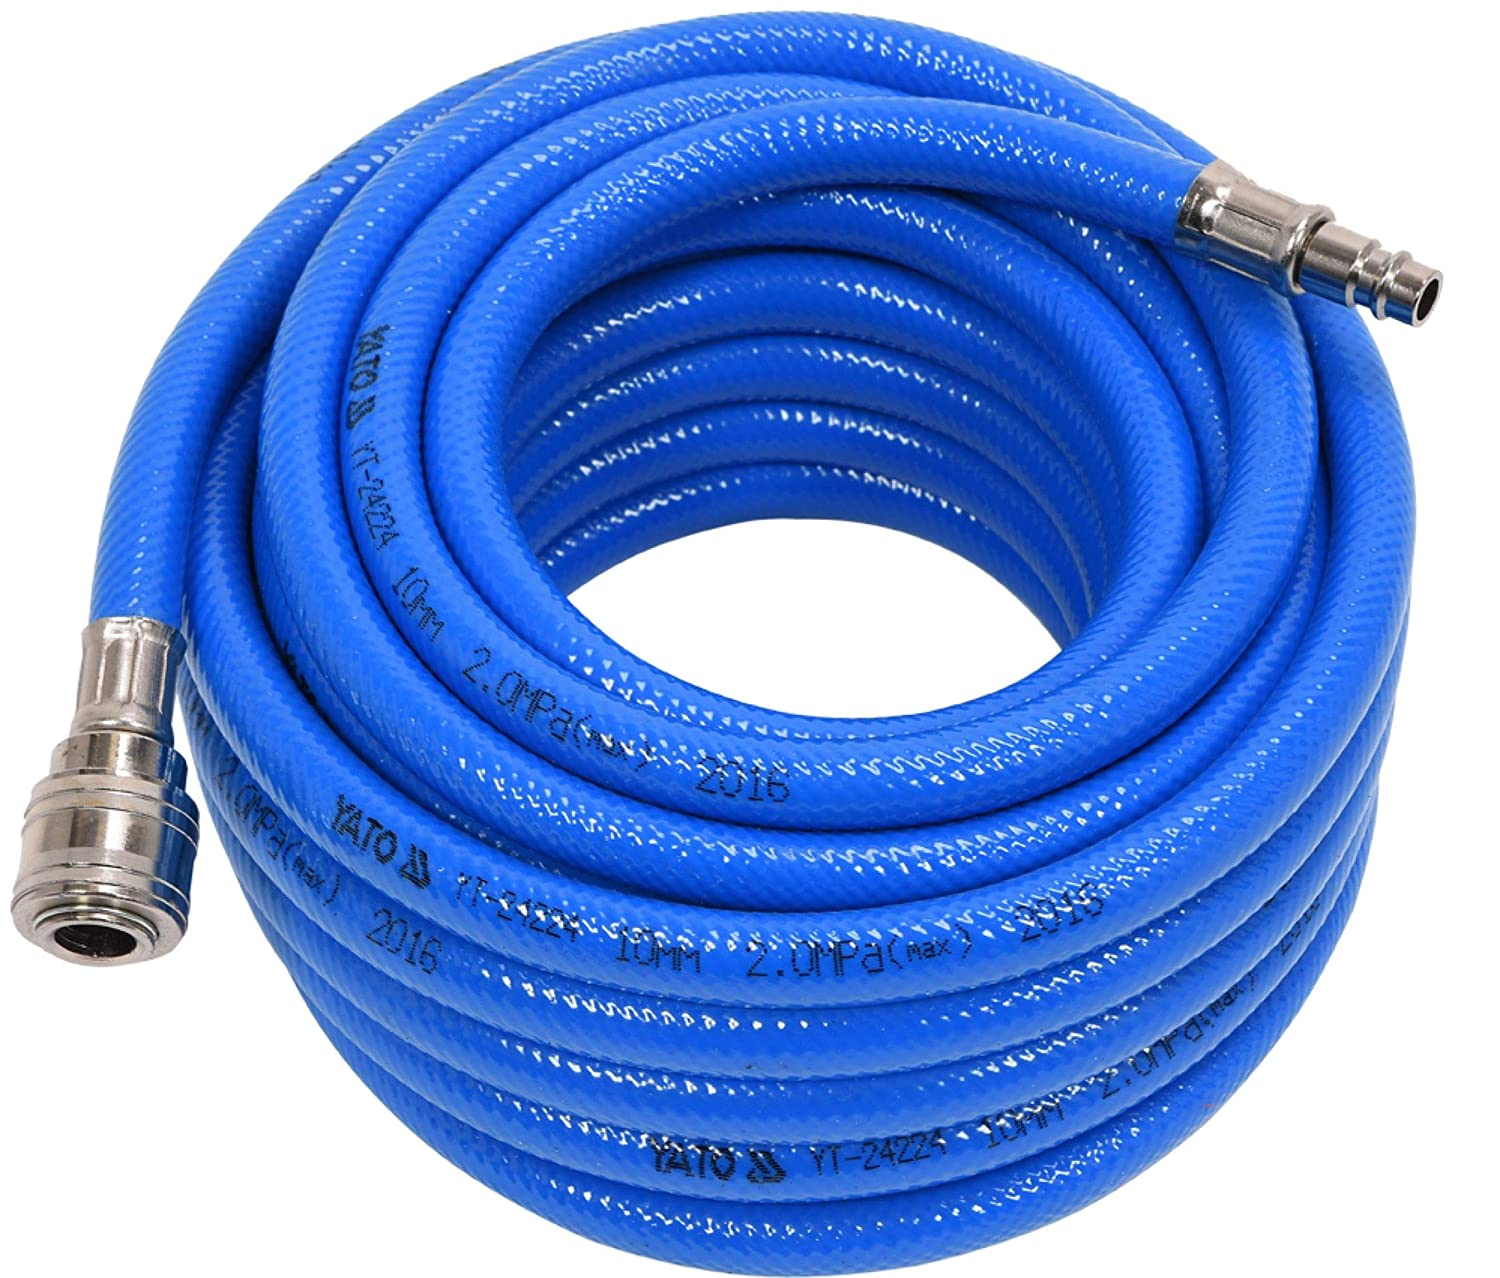 Yato yt-24221/ /Air Hose PVC with Coupling